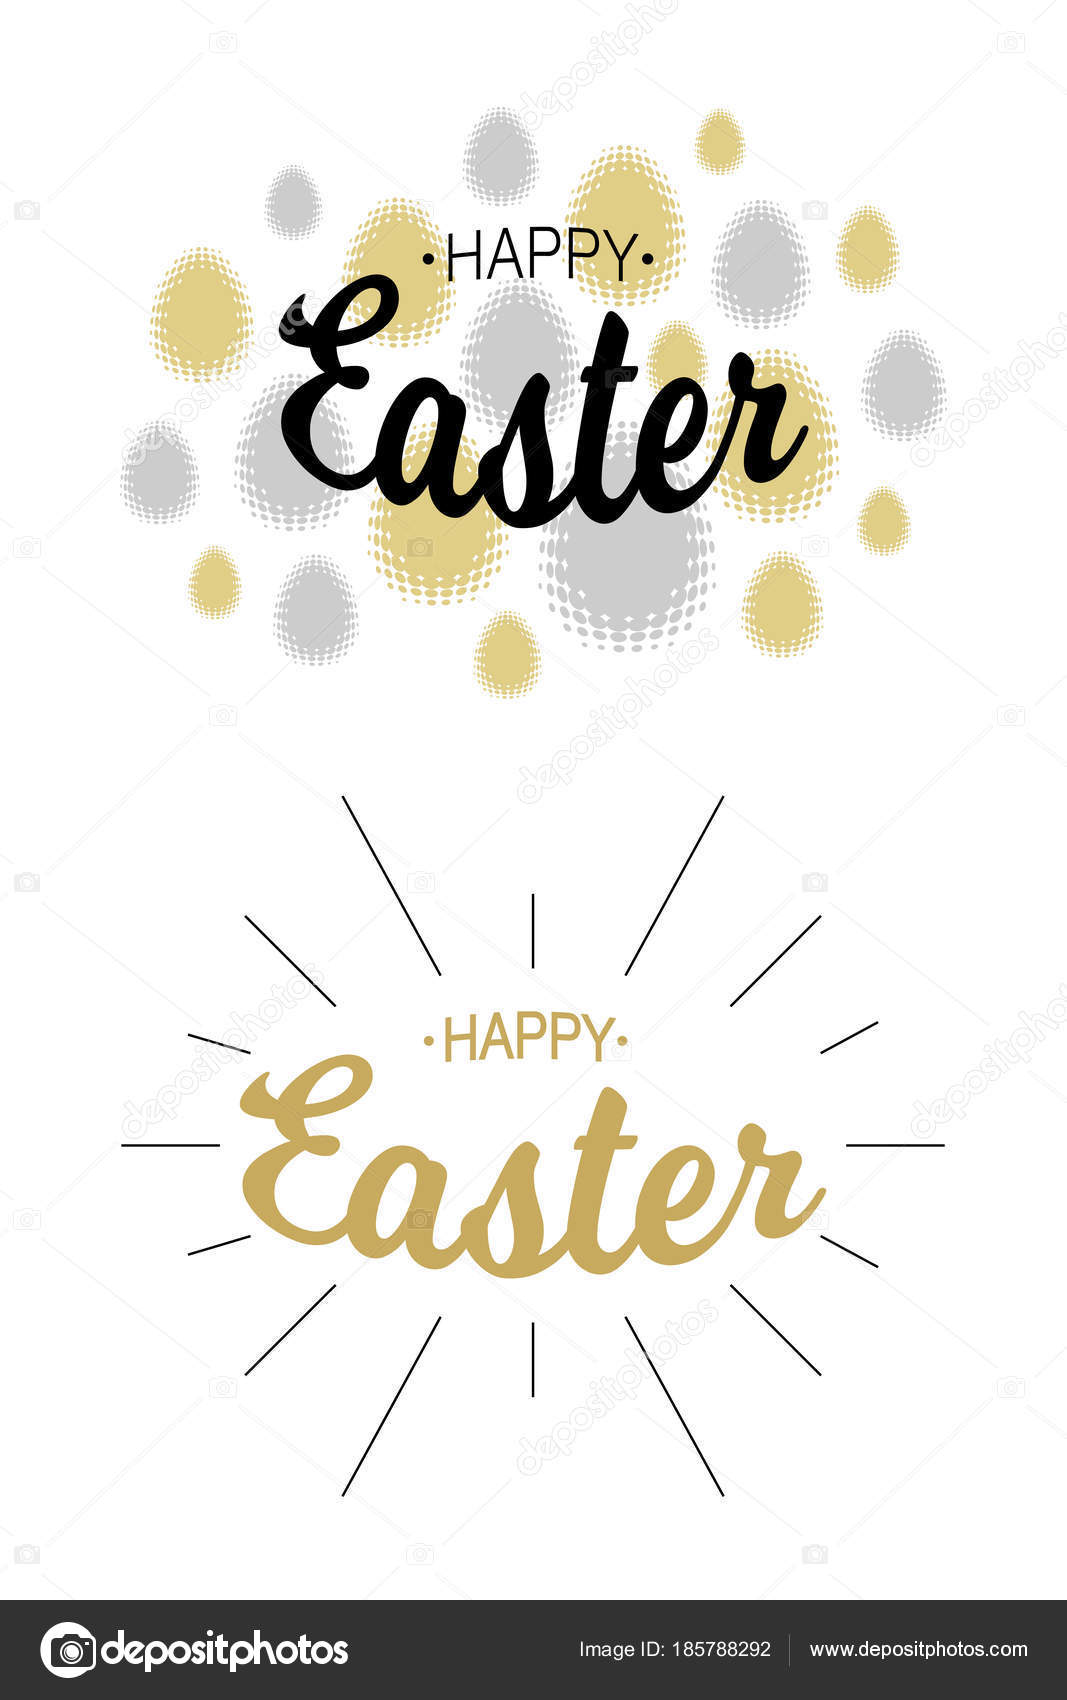 Easter greetings card backgrounds gold silver typographic gold silver typographic calligraphic lettering with black rays isolated on white background congratulations easter badge religious holiday sign m4hsunfo